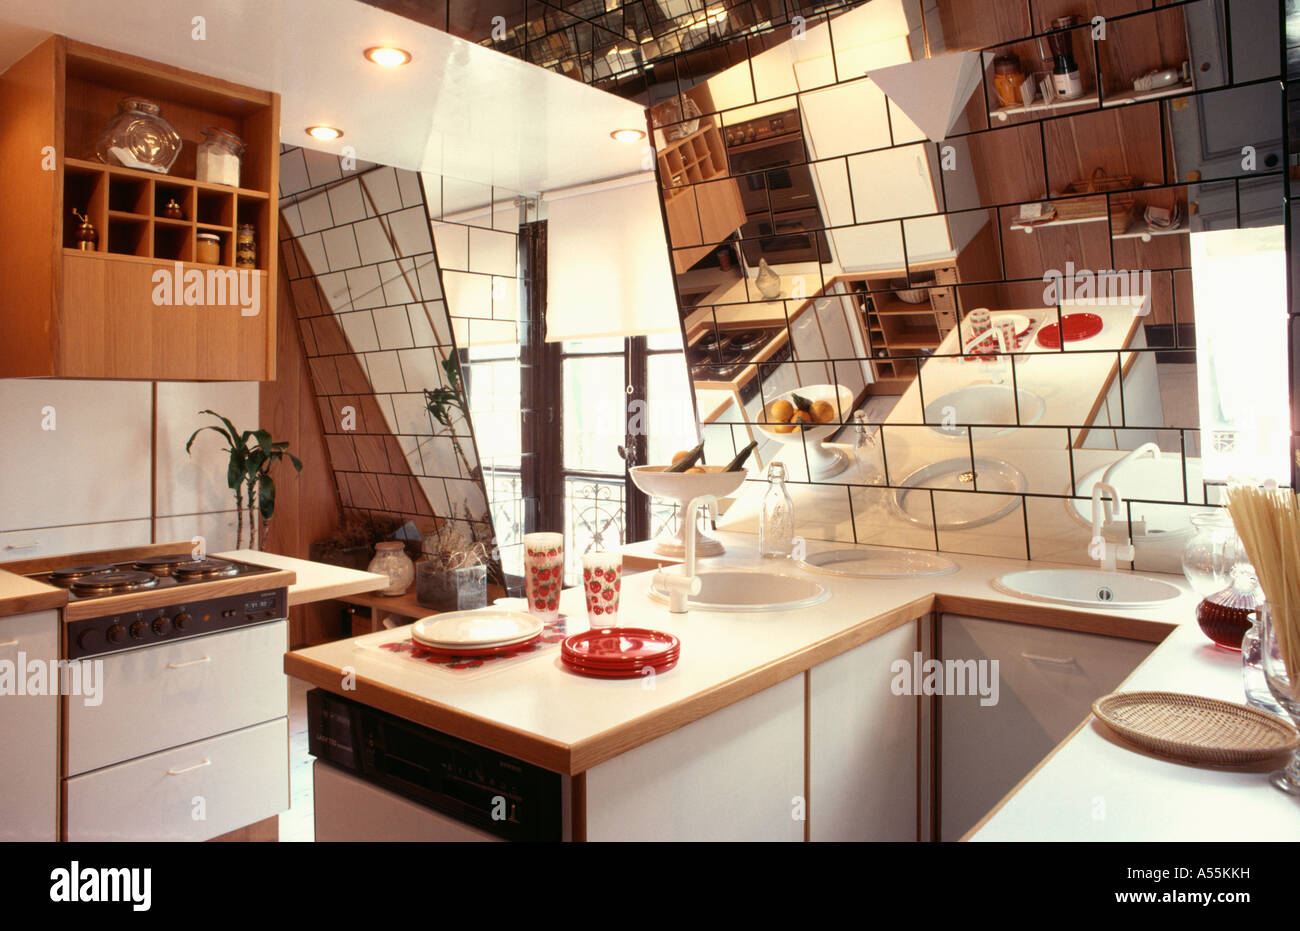 Small Attic Eighties Kitchen With Mirror Tiles On Sloping Walls